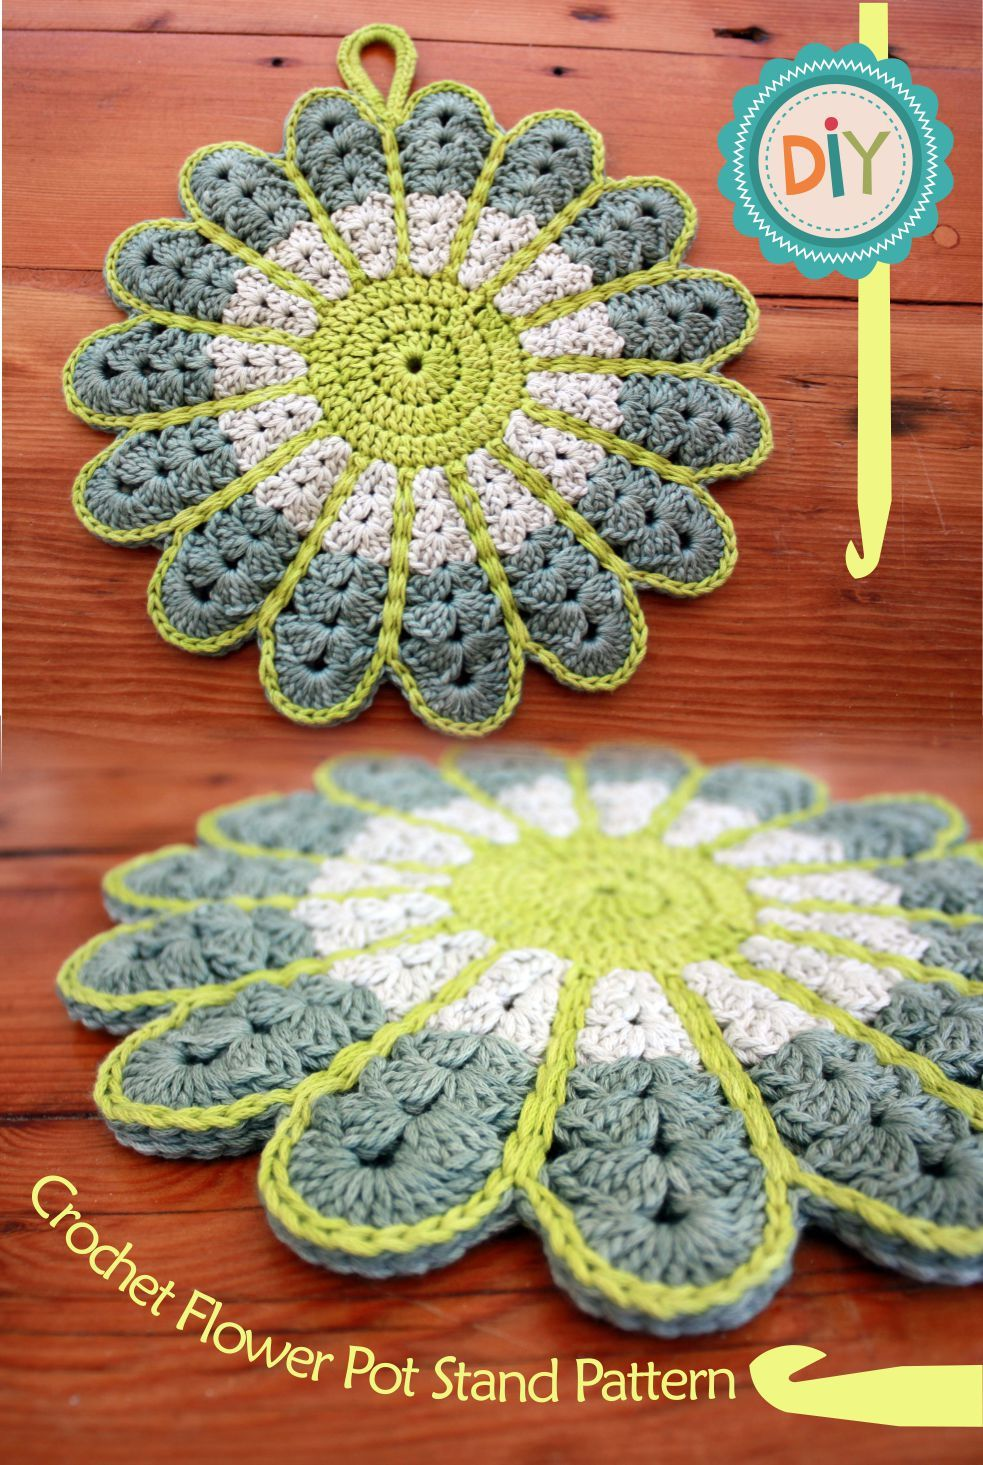 Crochet Flower Potstand: free pattern/tutorial. This rocks! thanks ...